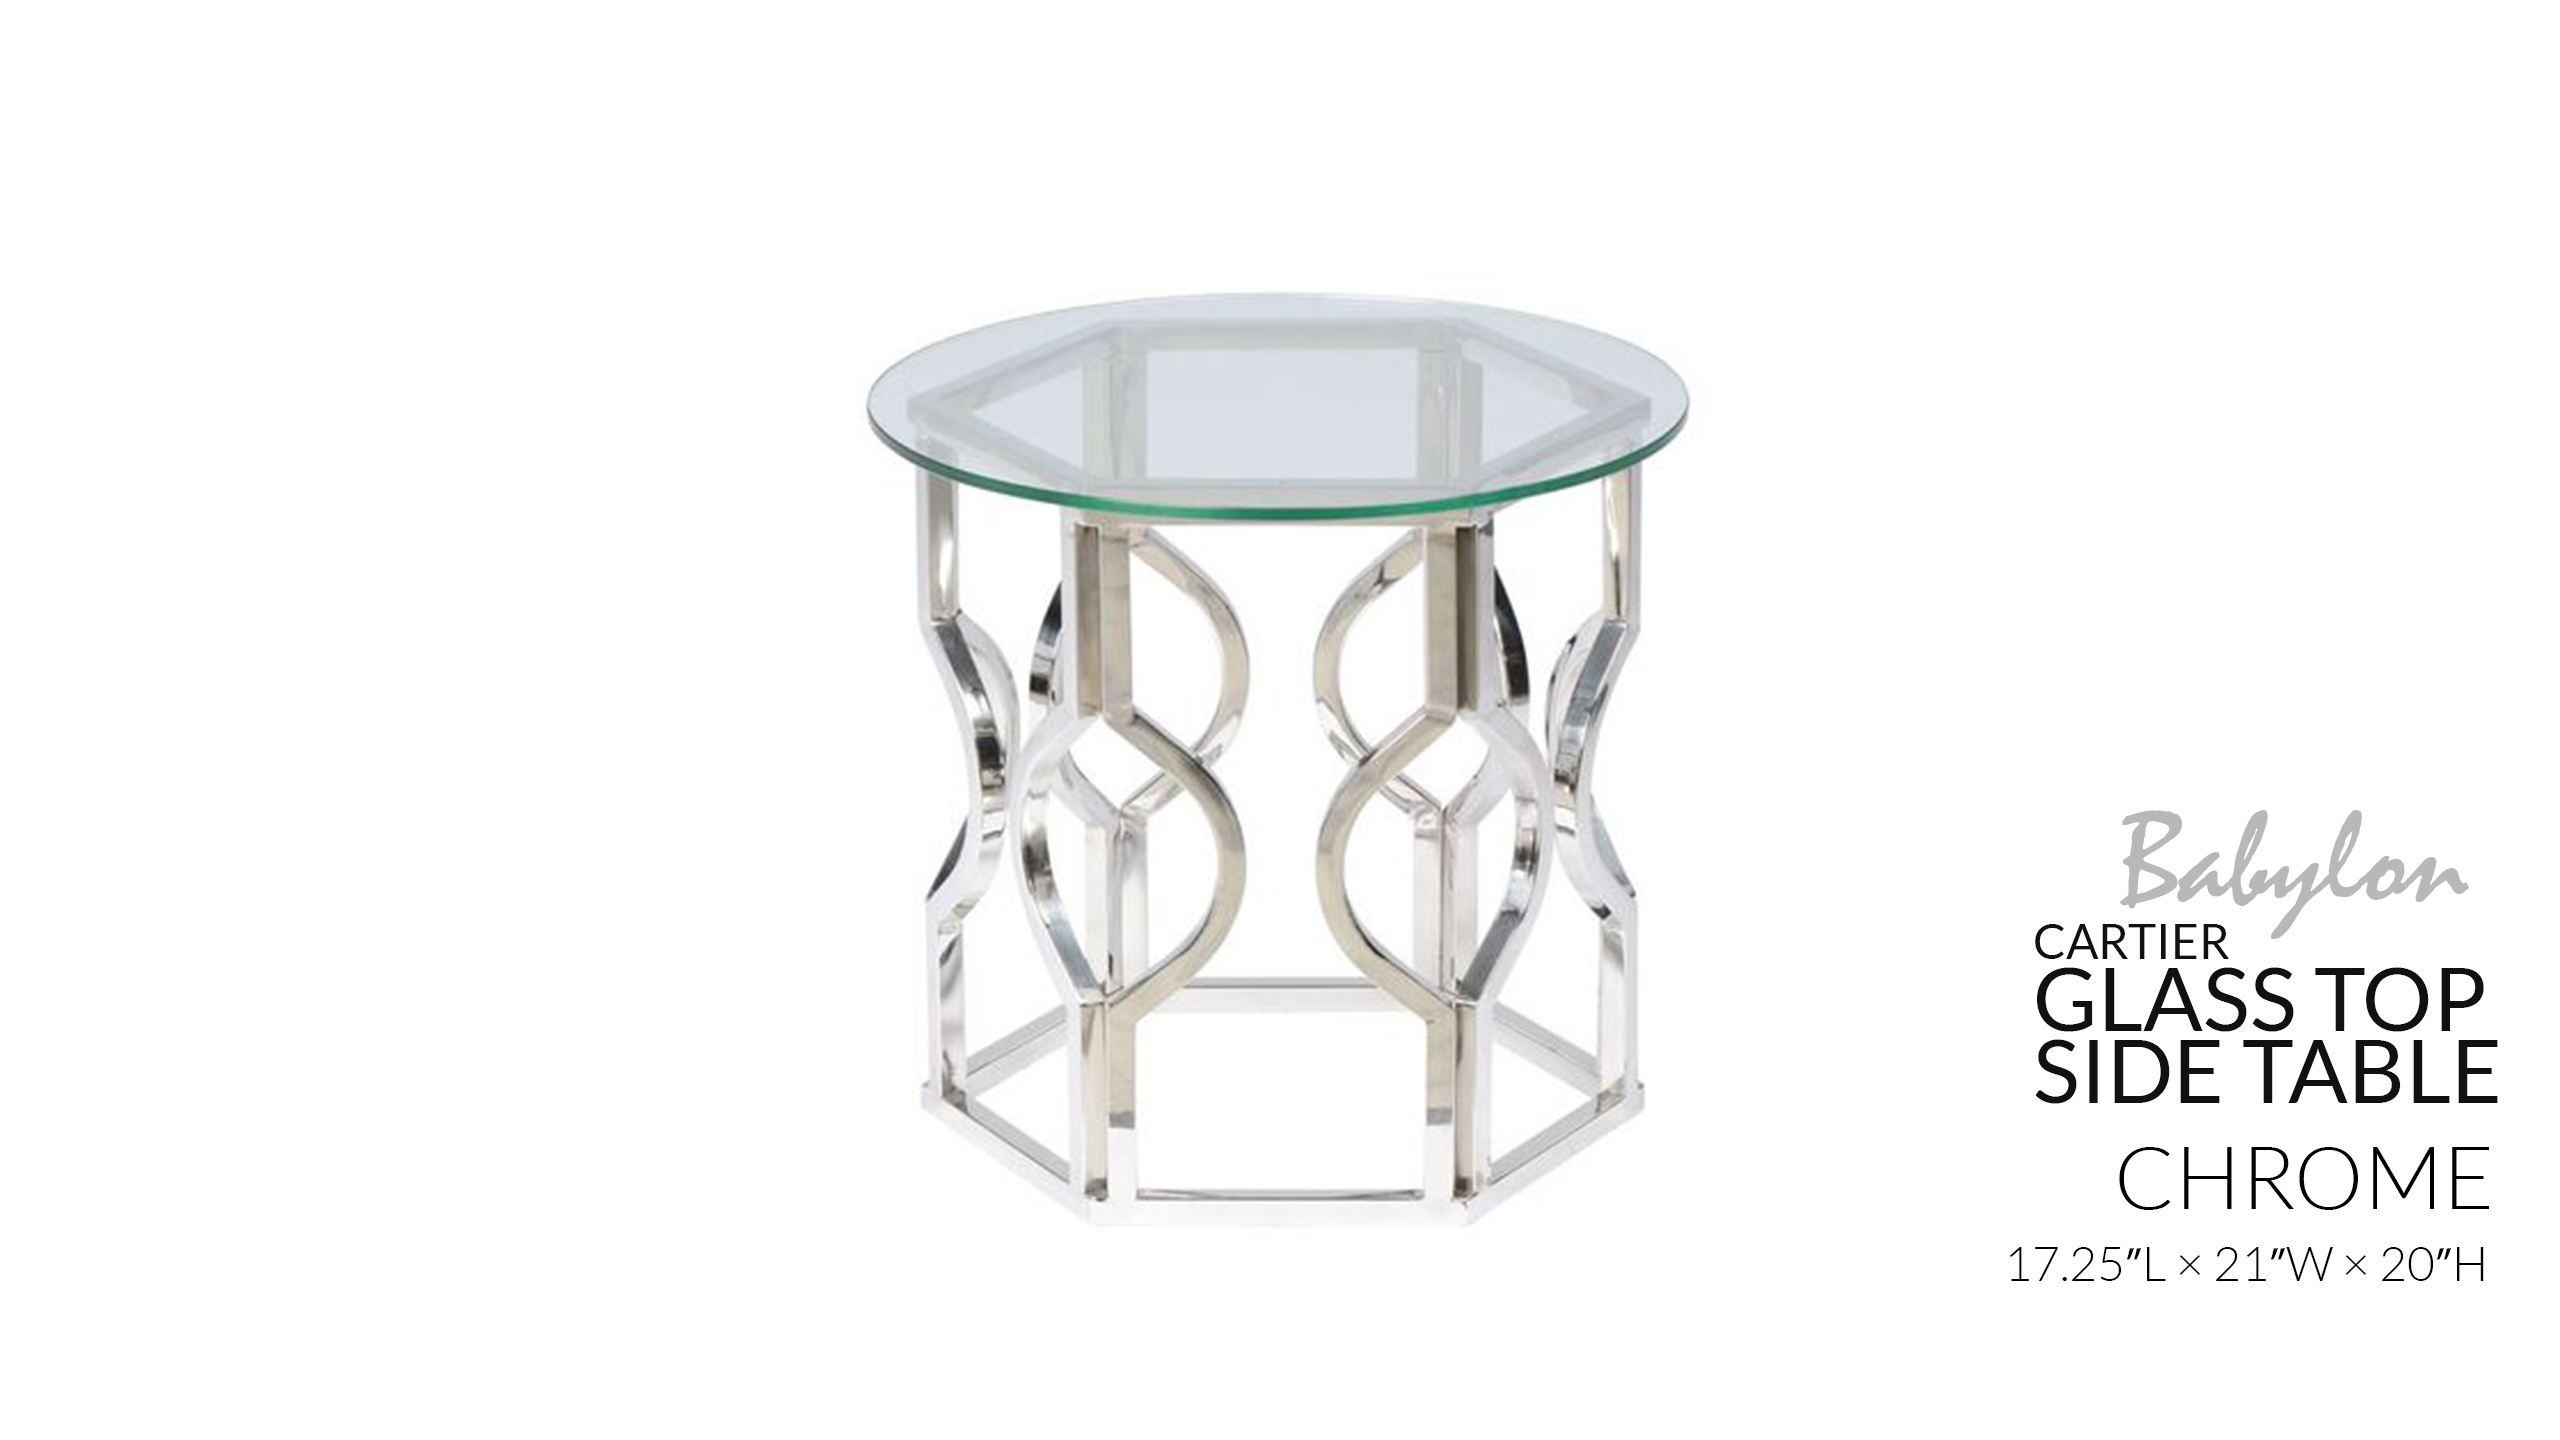 babylon decor accent table collection toronto wedding cartier side chrome tables white and gold junior drum seat three coffee outdoor metal round chairs glass with wooden legs